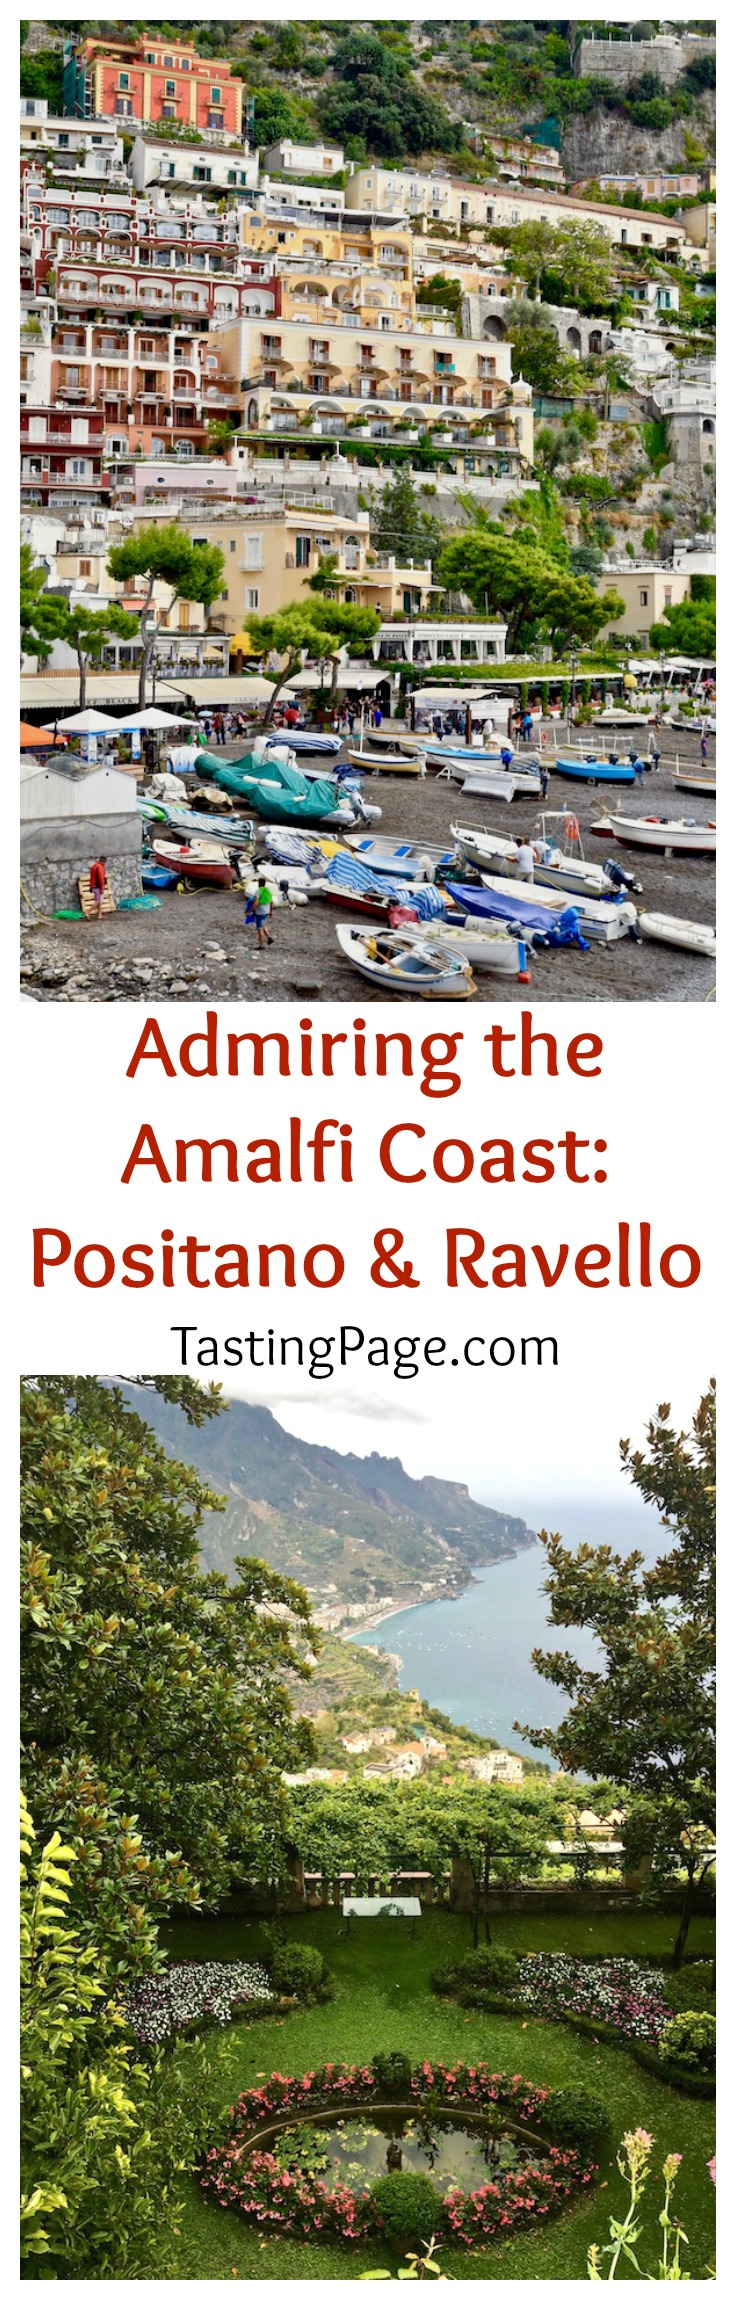 What to see and do when traveling the Amalfi Coast in Positano and Ravello | TastingPage.com